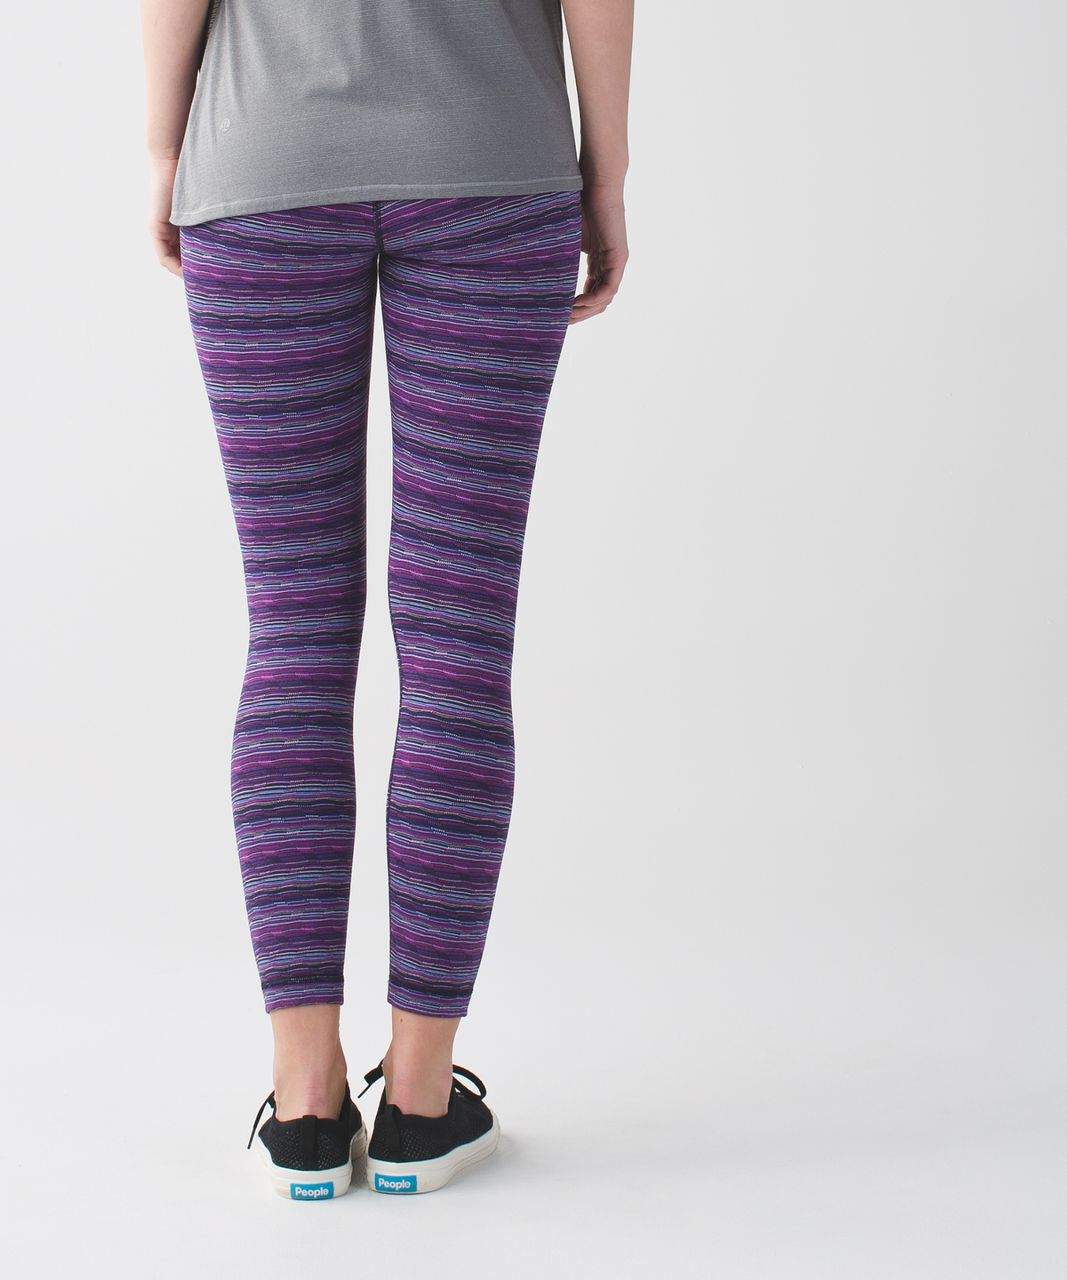 Lululemon High Times Pant - Space Dye Twist Ultra Violet Multi